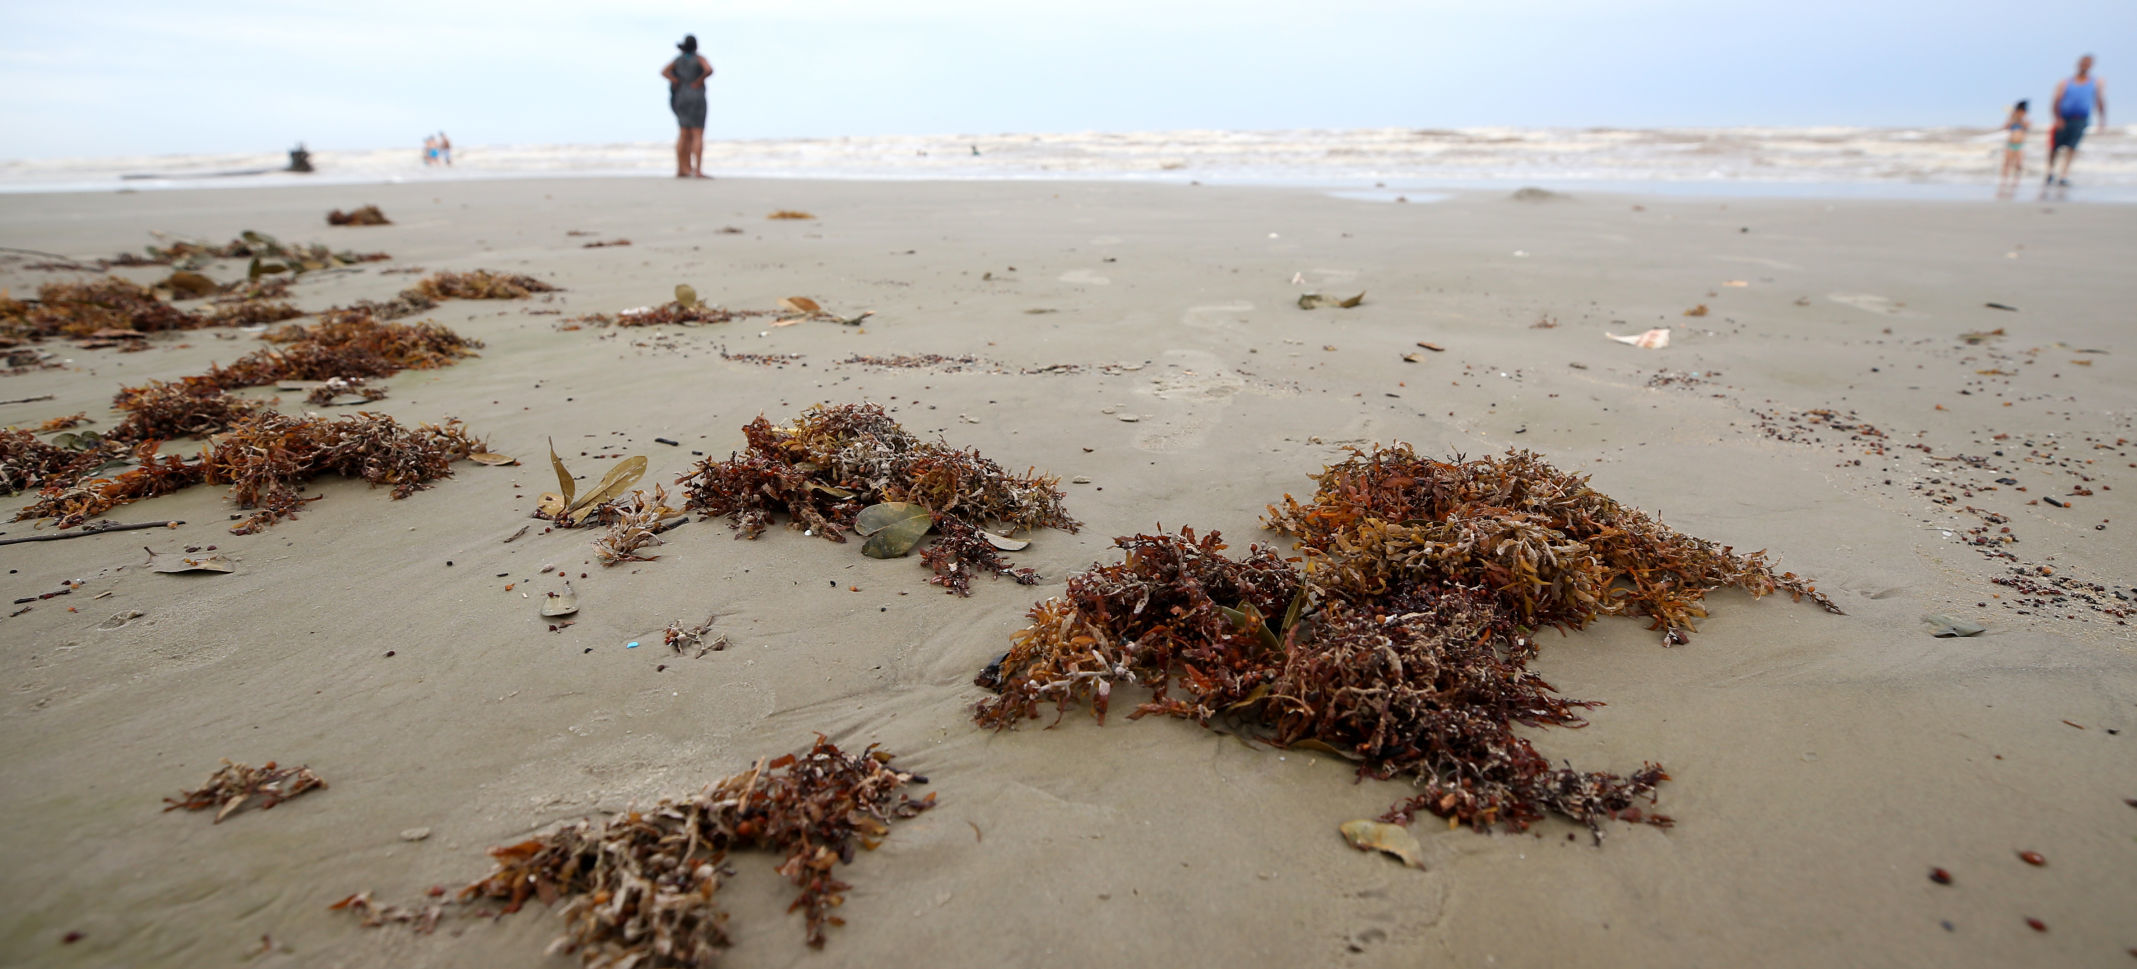 West End Galveston residents push for seaweed-cleaning permits